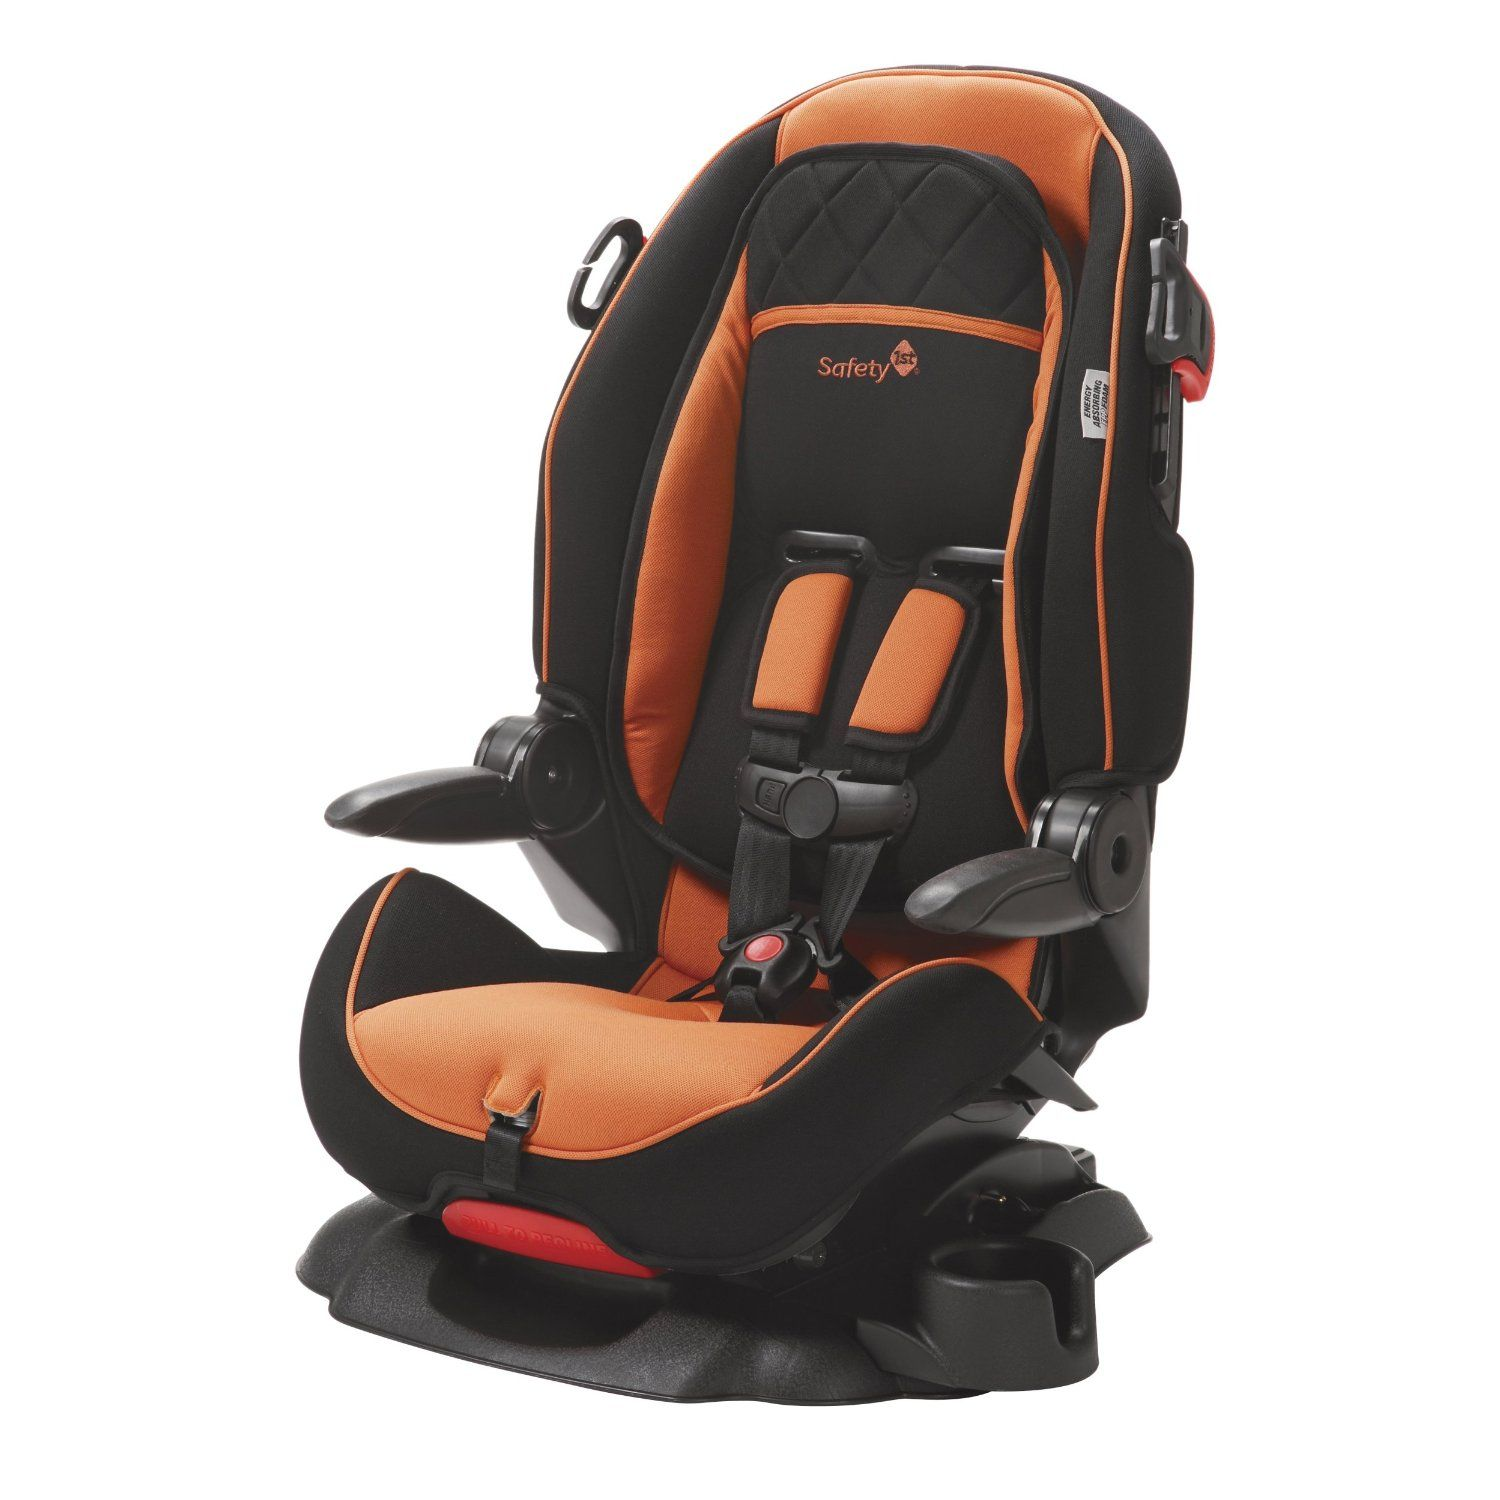 Child Safety Booster Car Seats, Safety 1st Summit Deluxe